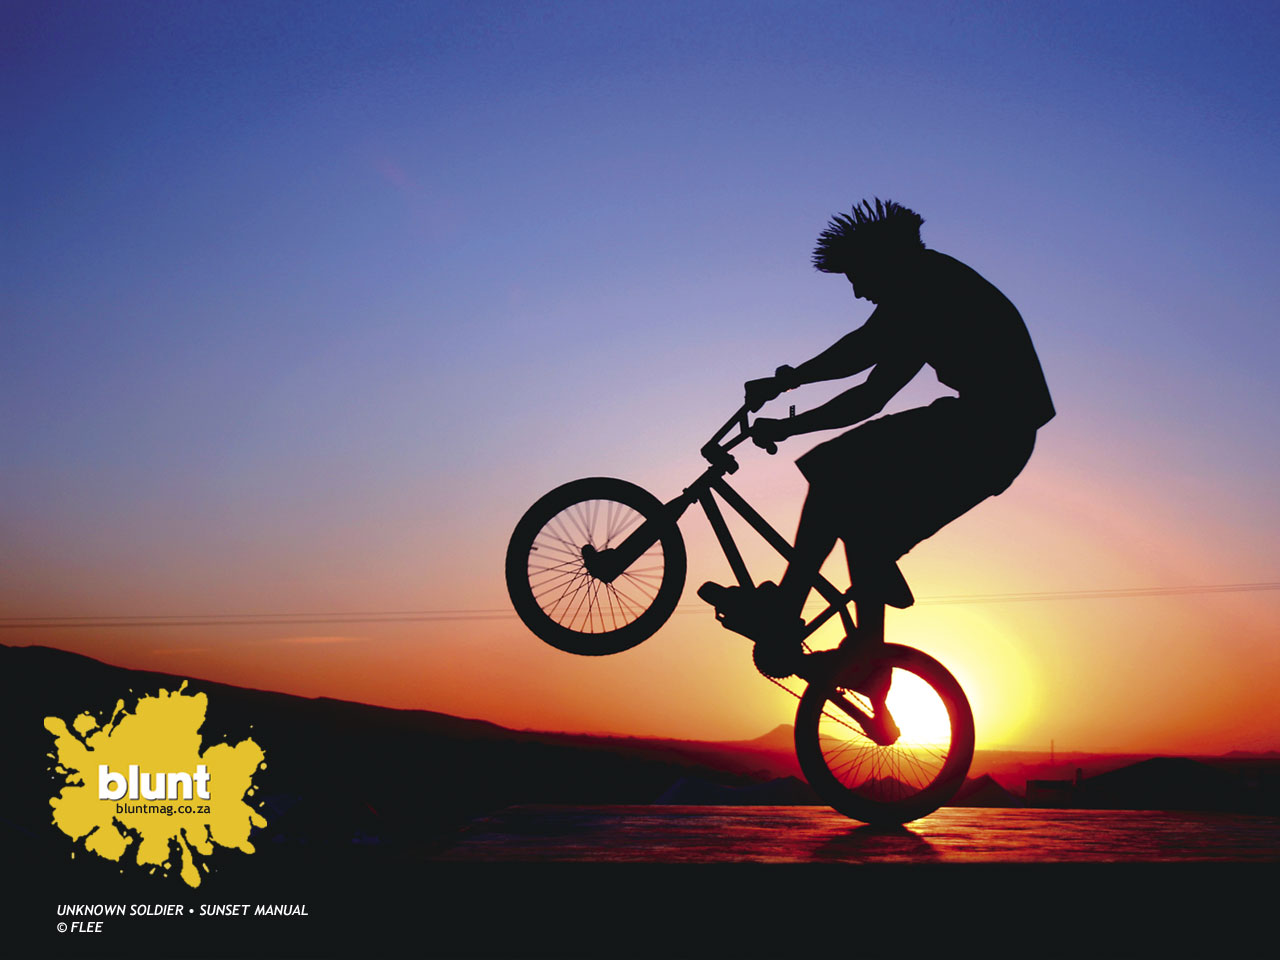 Awesome Bmx Wallpaper: Exciting Bmx Logo Wallpaper 1280x960px